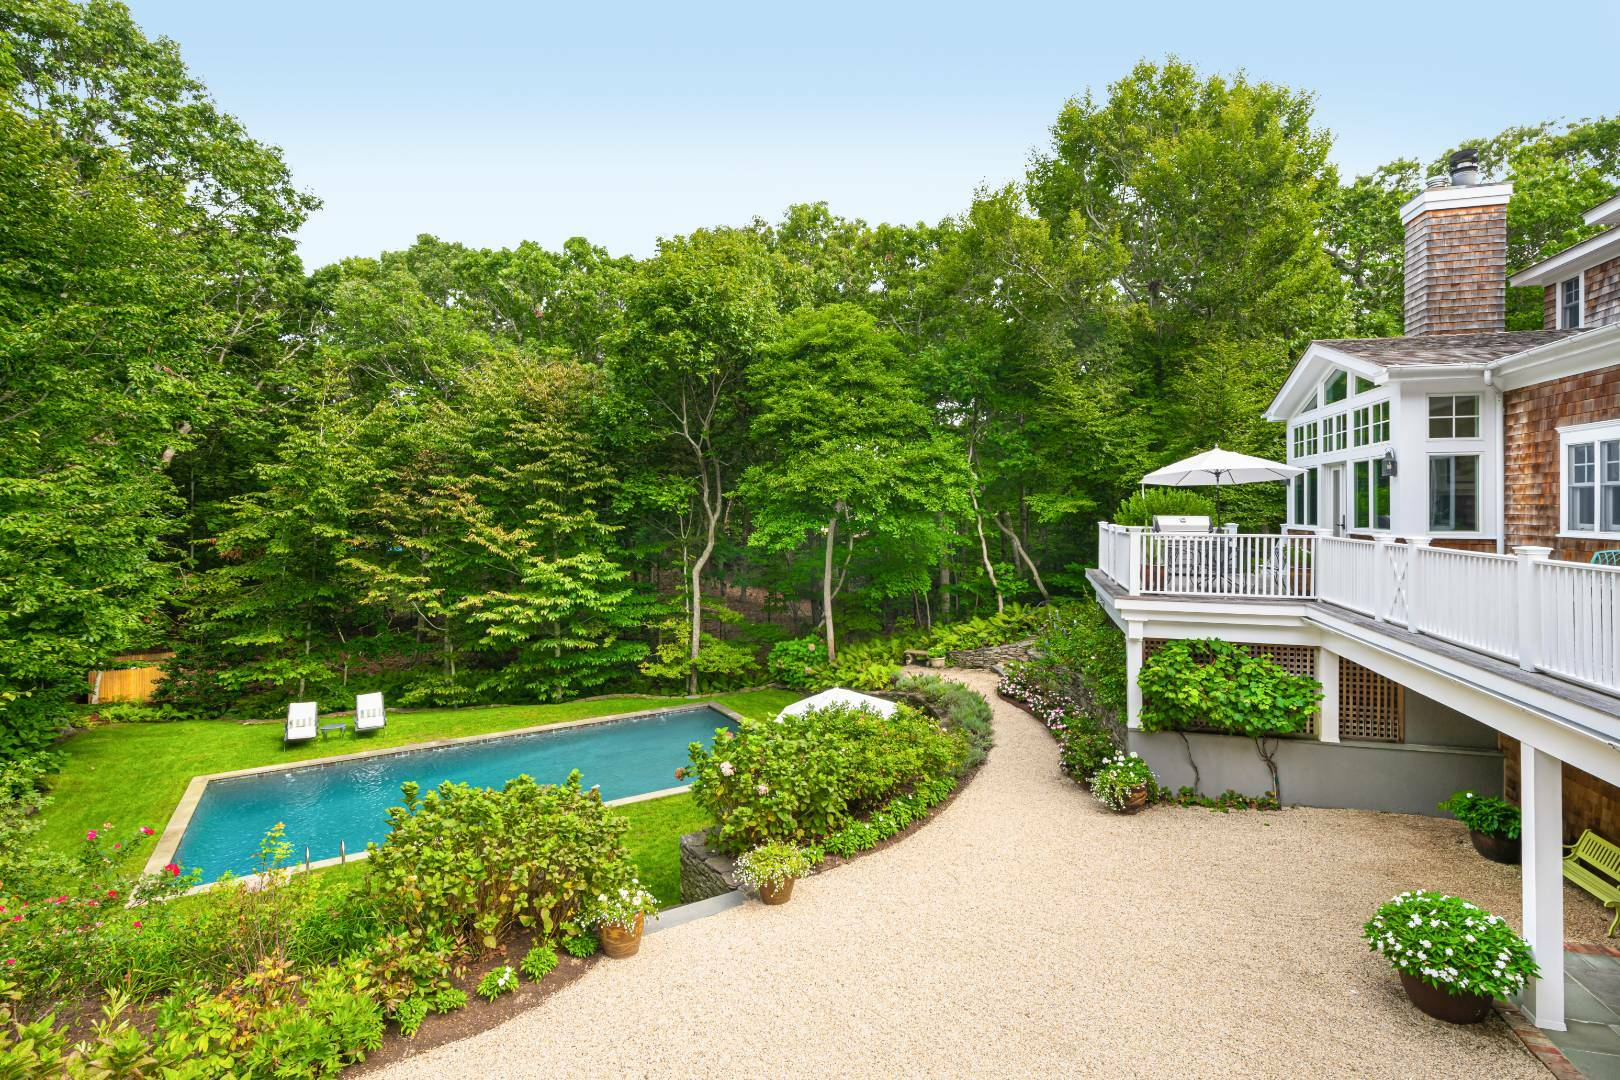 The house and gardens at 6 Catulpa Place, built on a kettle hole.